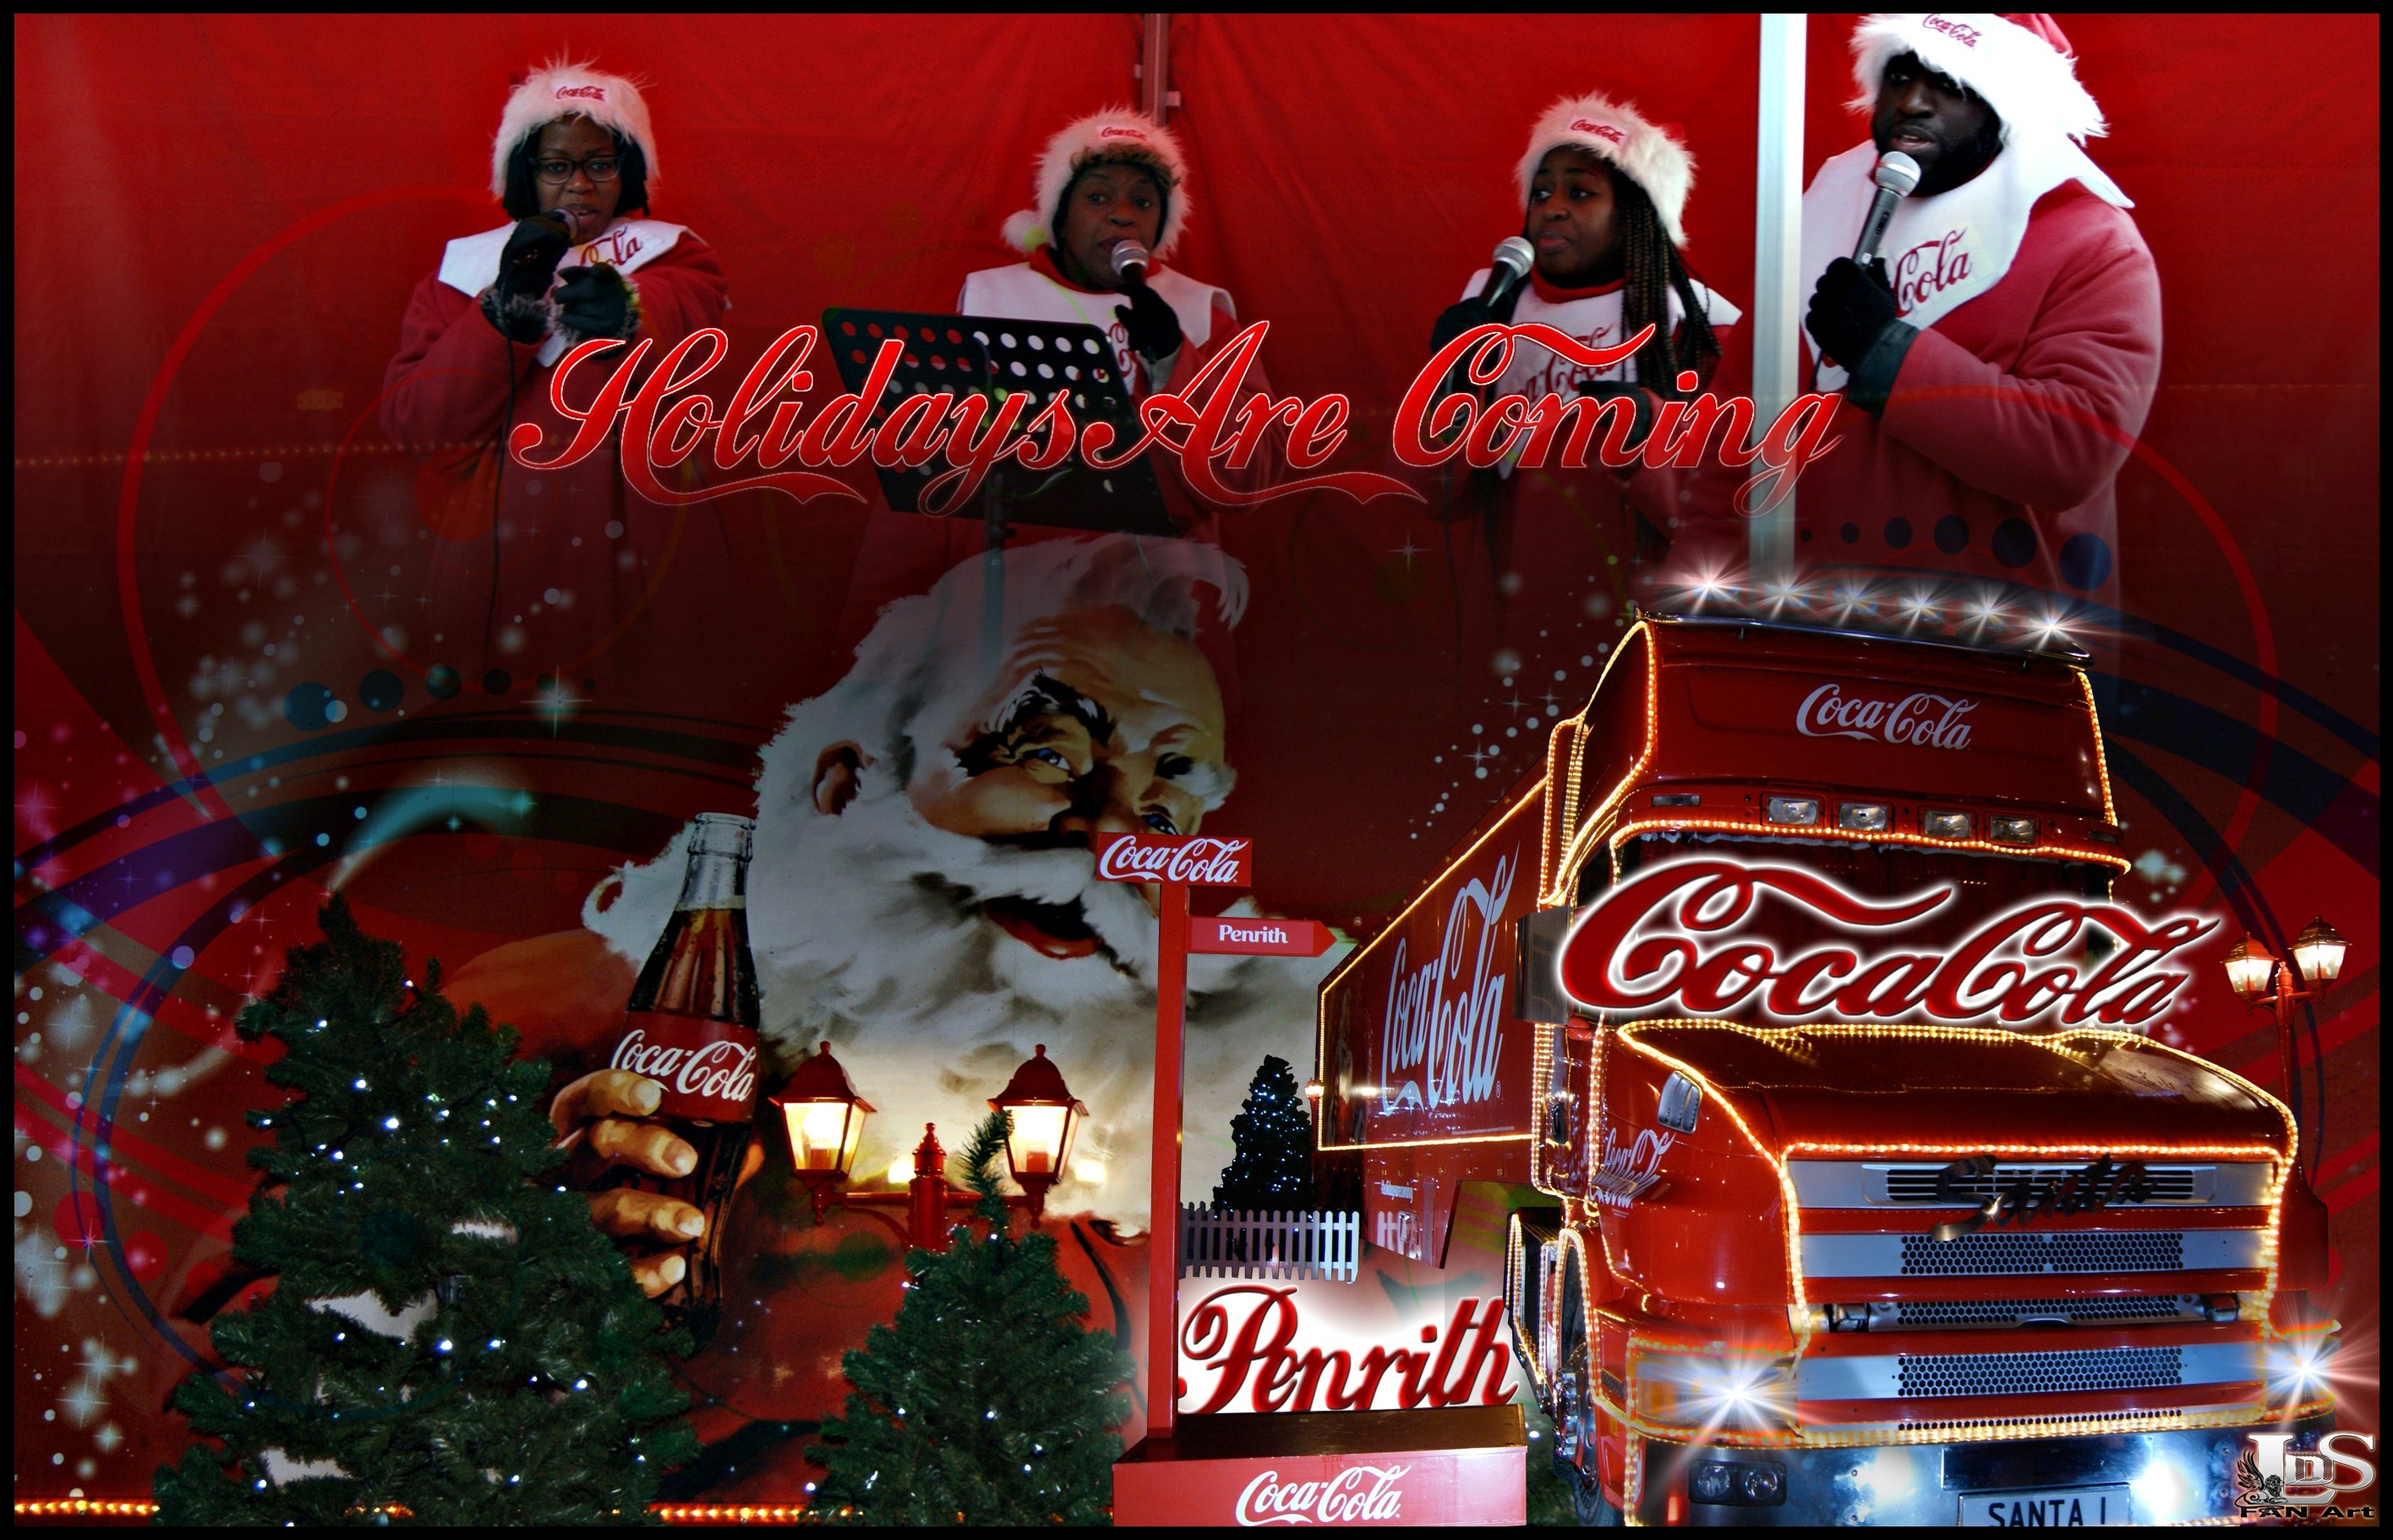 Coke Images Coca Cola ChristmasTruck Holidays Are Coming HD Wallpaper And Background Photos